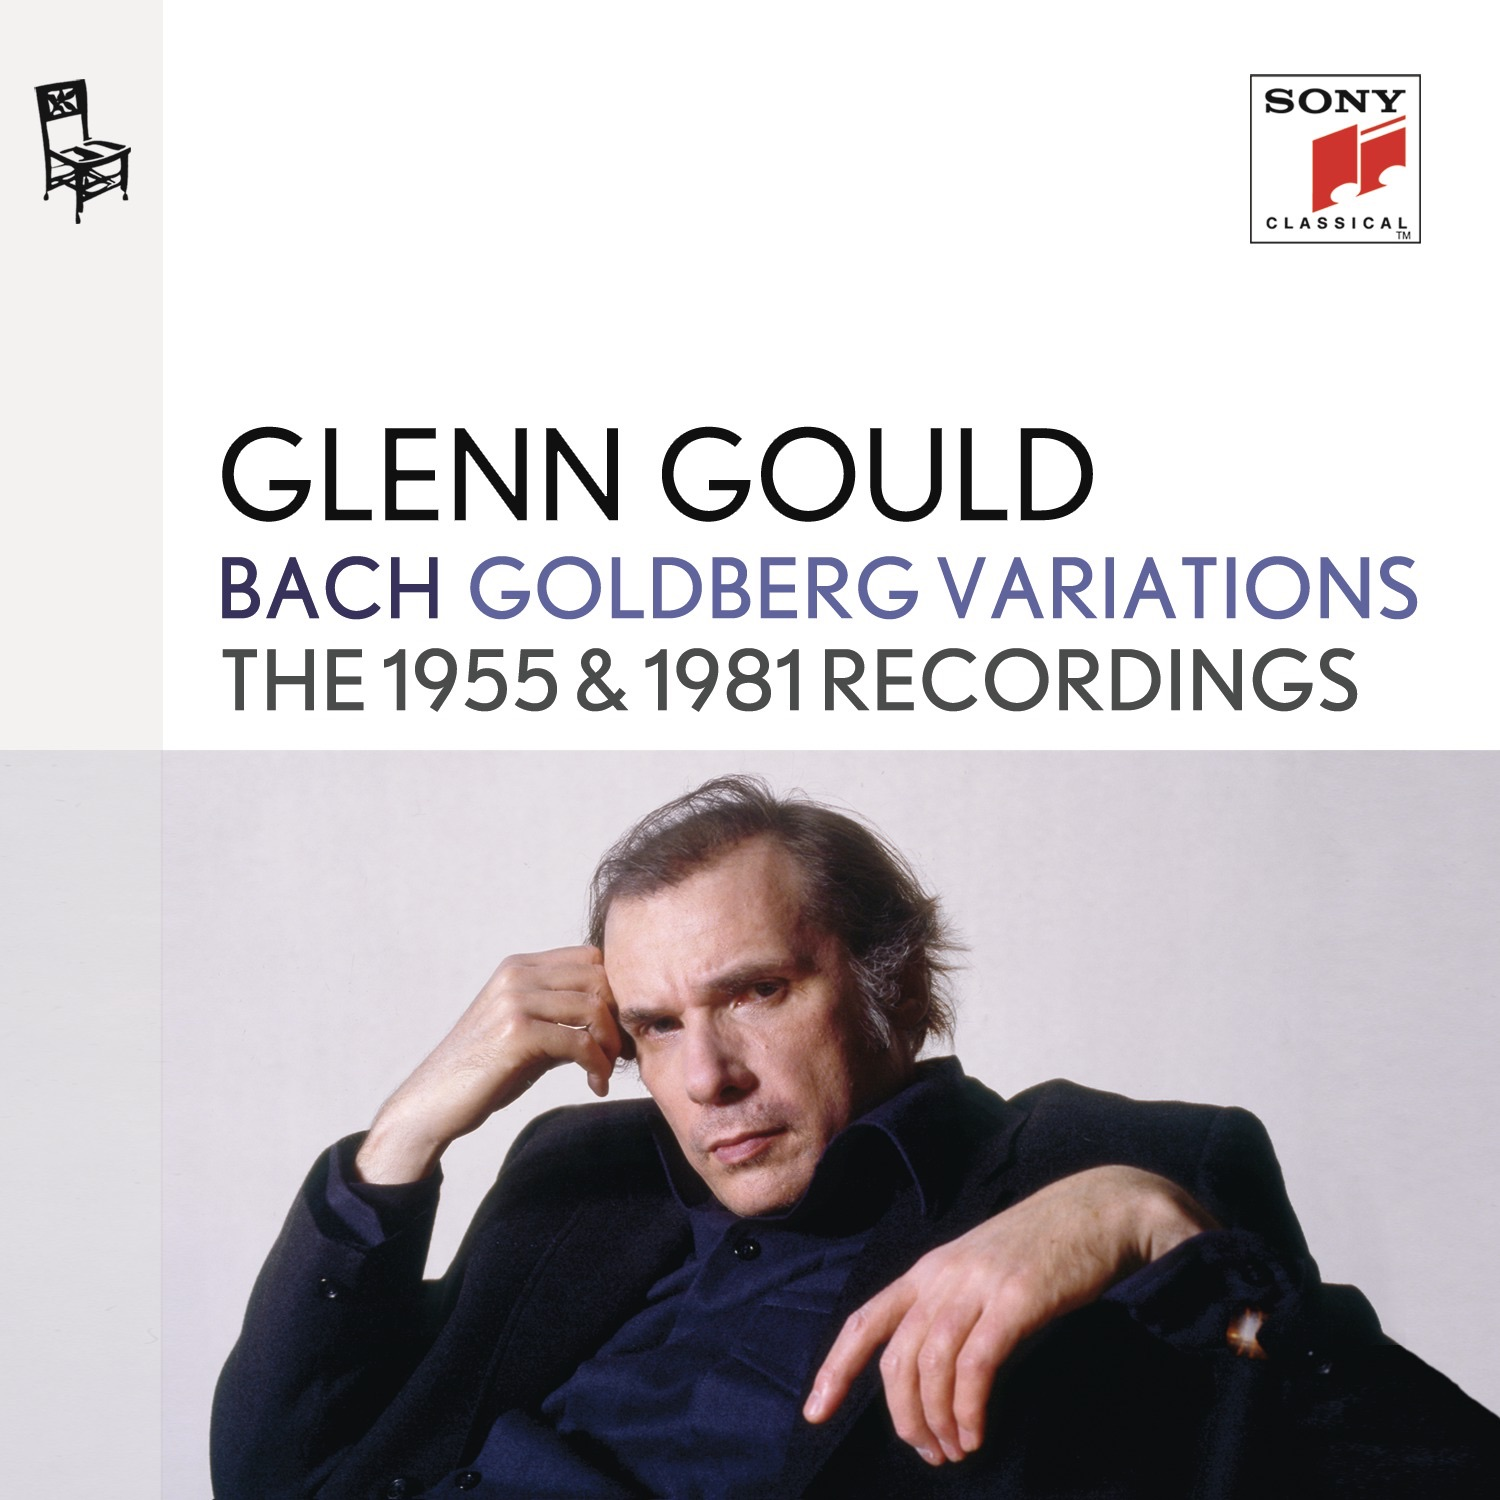 Goldberg Variations, BWV 988 (1955 Recording): Variation 7 a 1 ovvero 2 Clav.